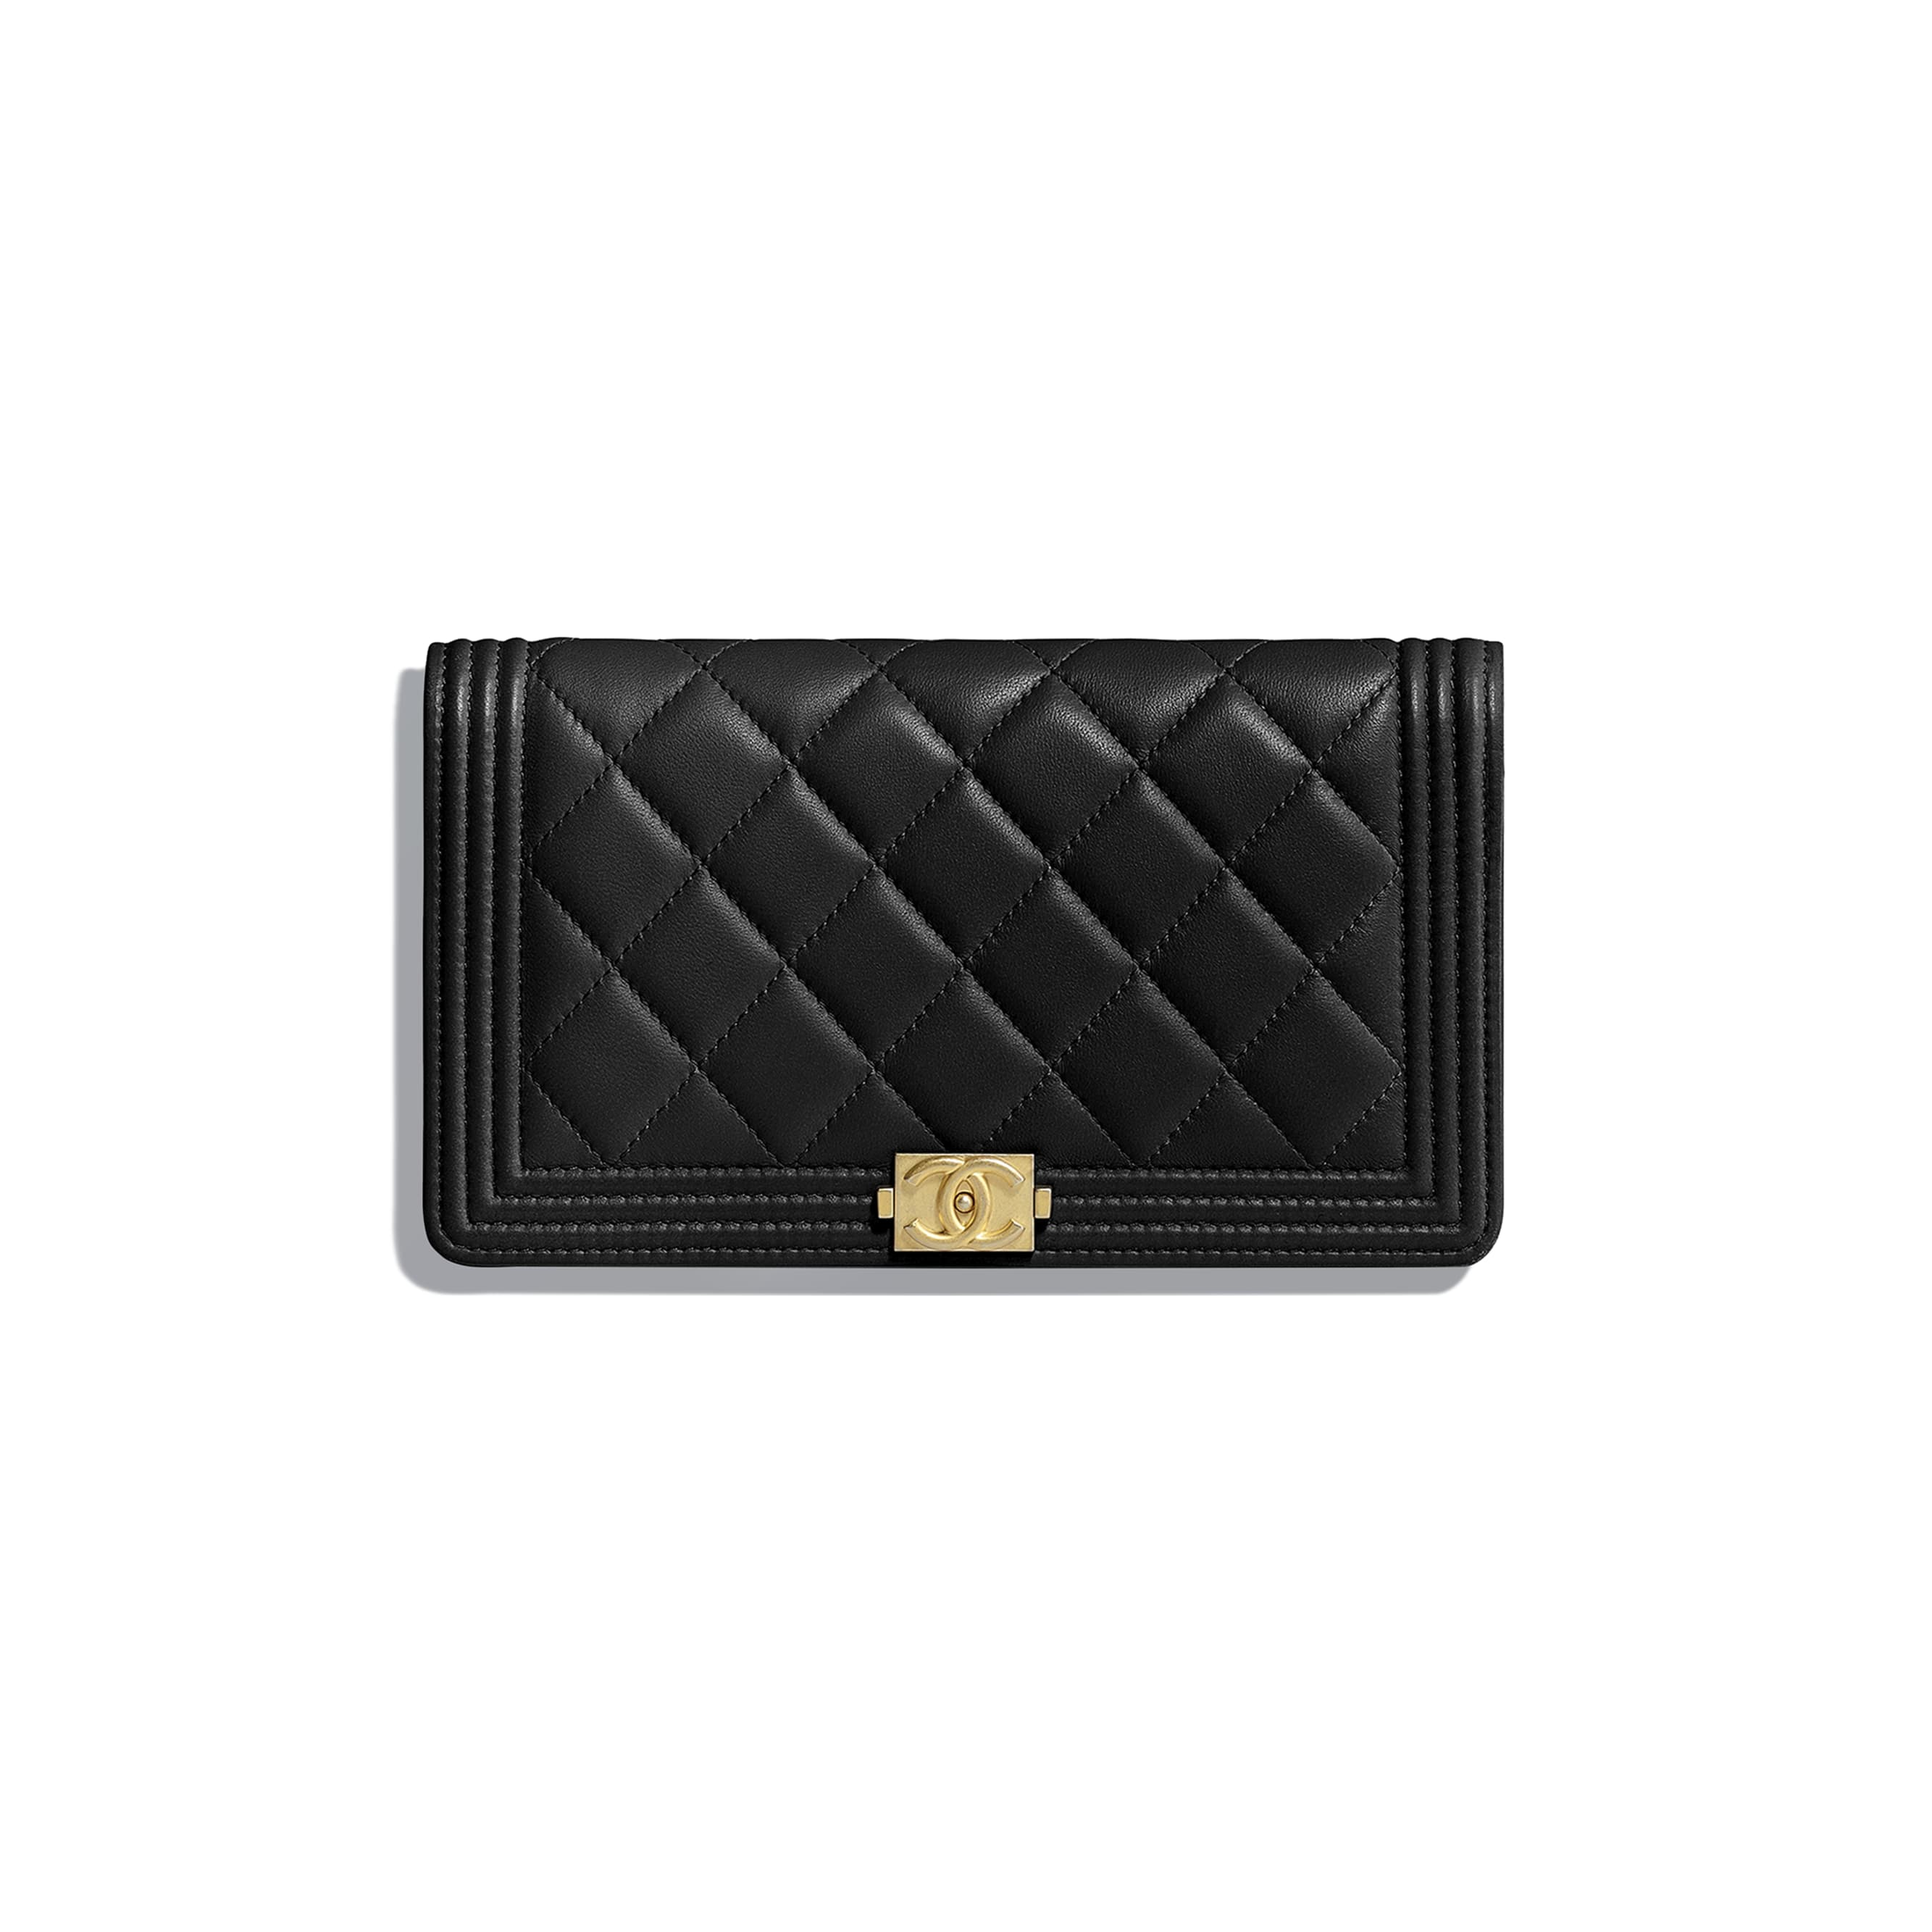 BOY CHANEL Long Flap Wallet - Black - Lambskin - Default view - see standard sized version